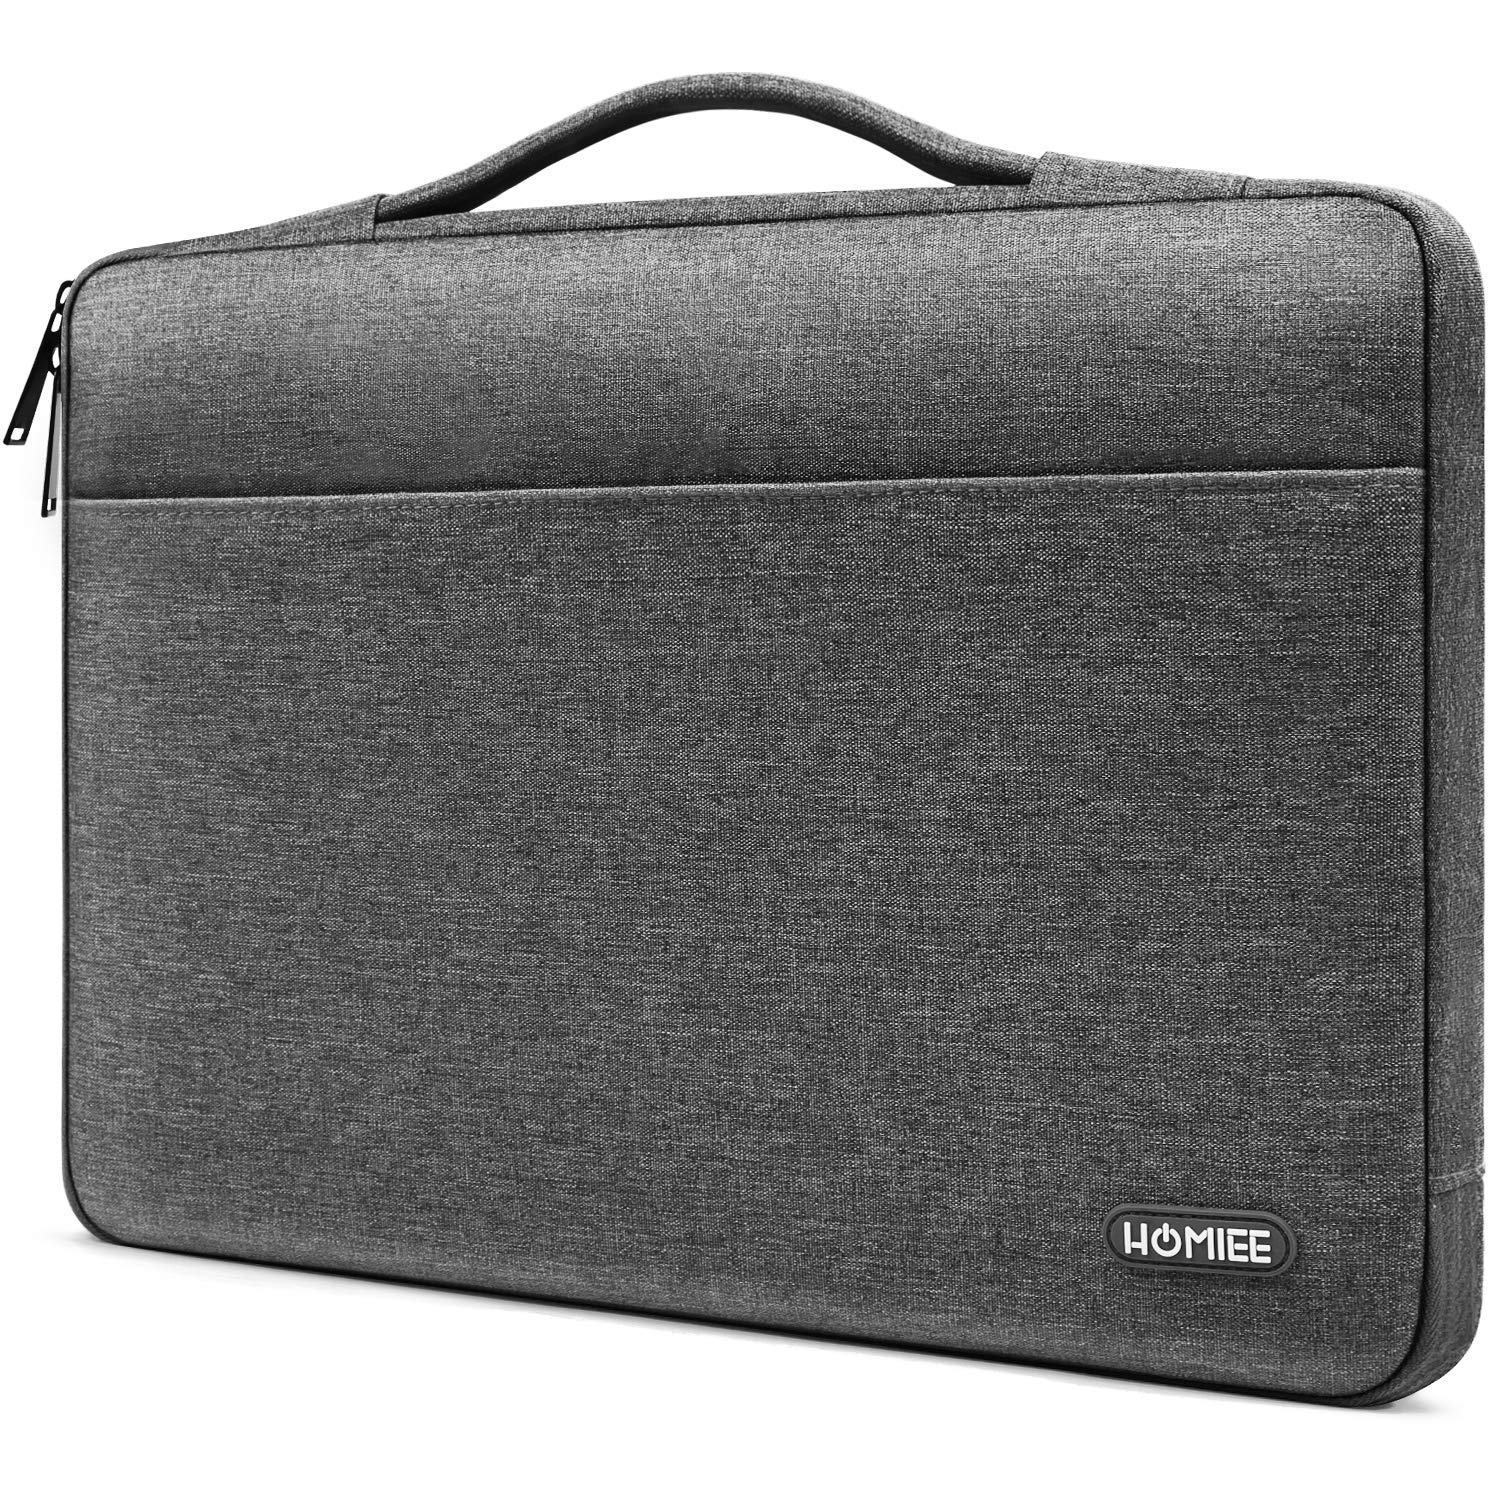 HOMIEE 13-13.3 Inch Laptop Sleeve with Handle Shockproof Deals